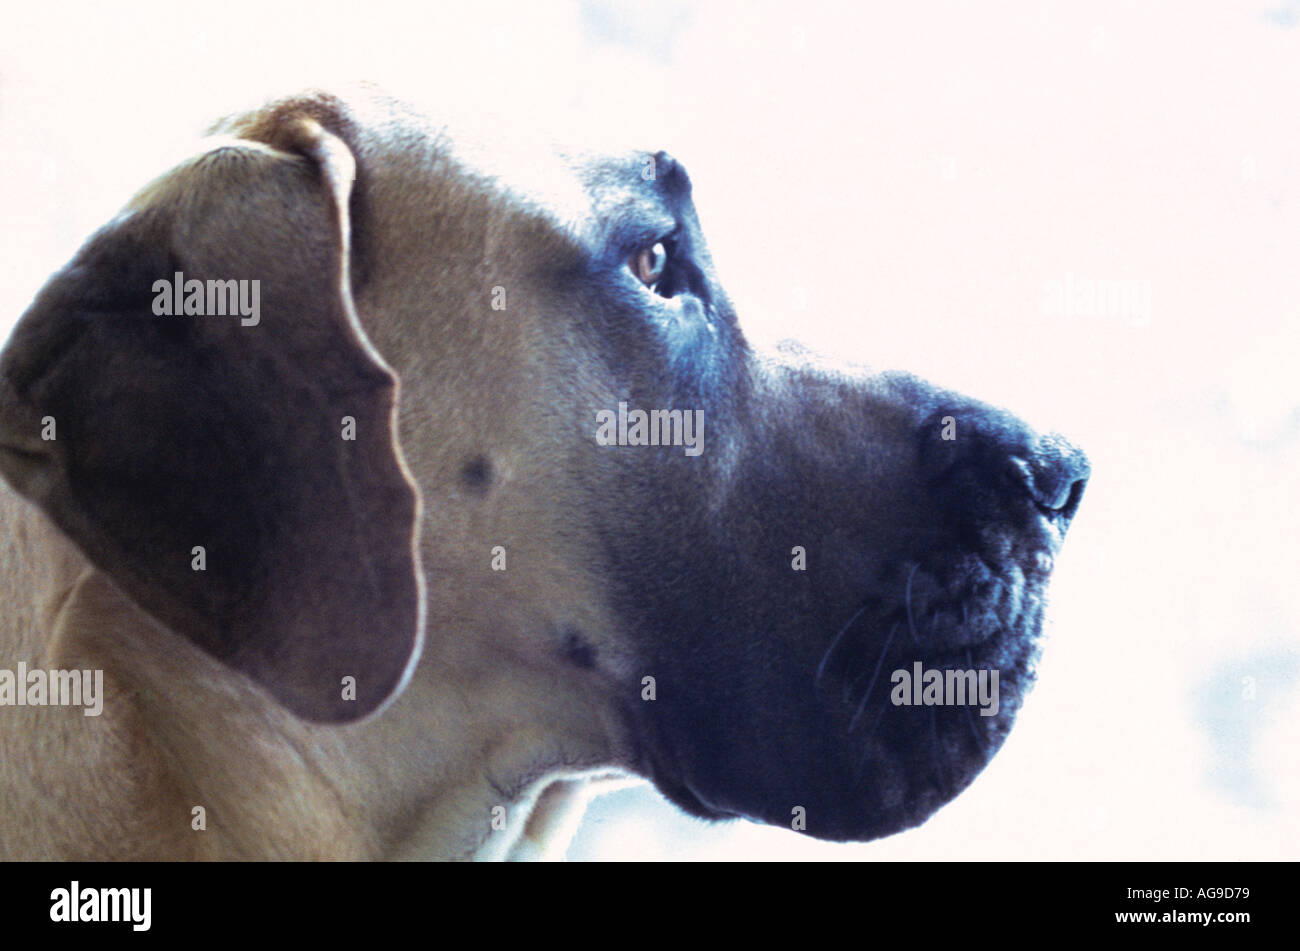 Great Dane dog portrait - Stock Image